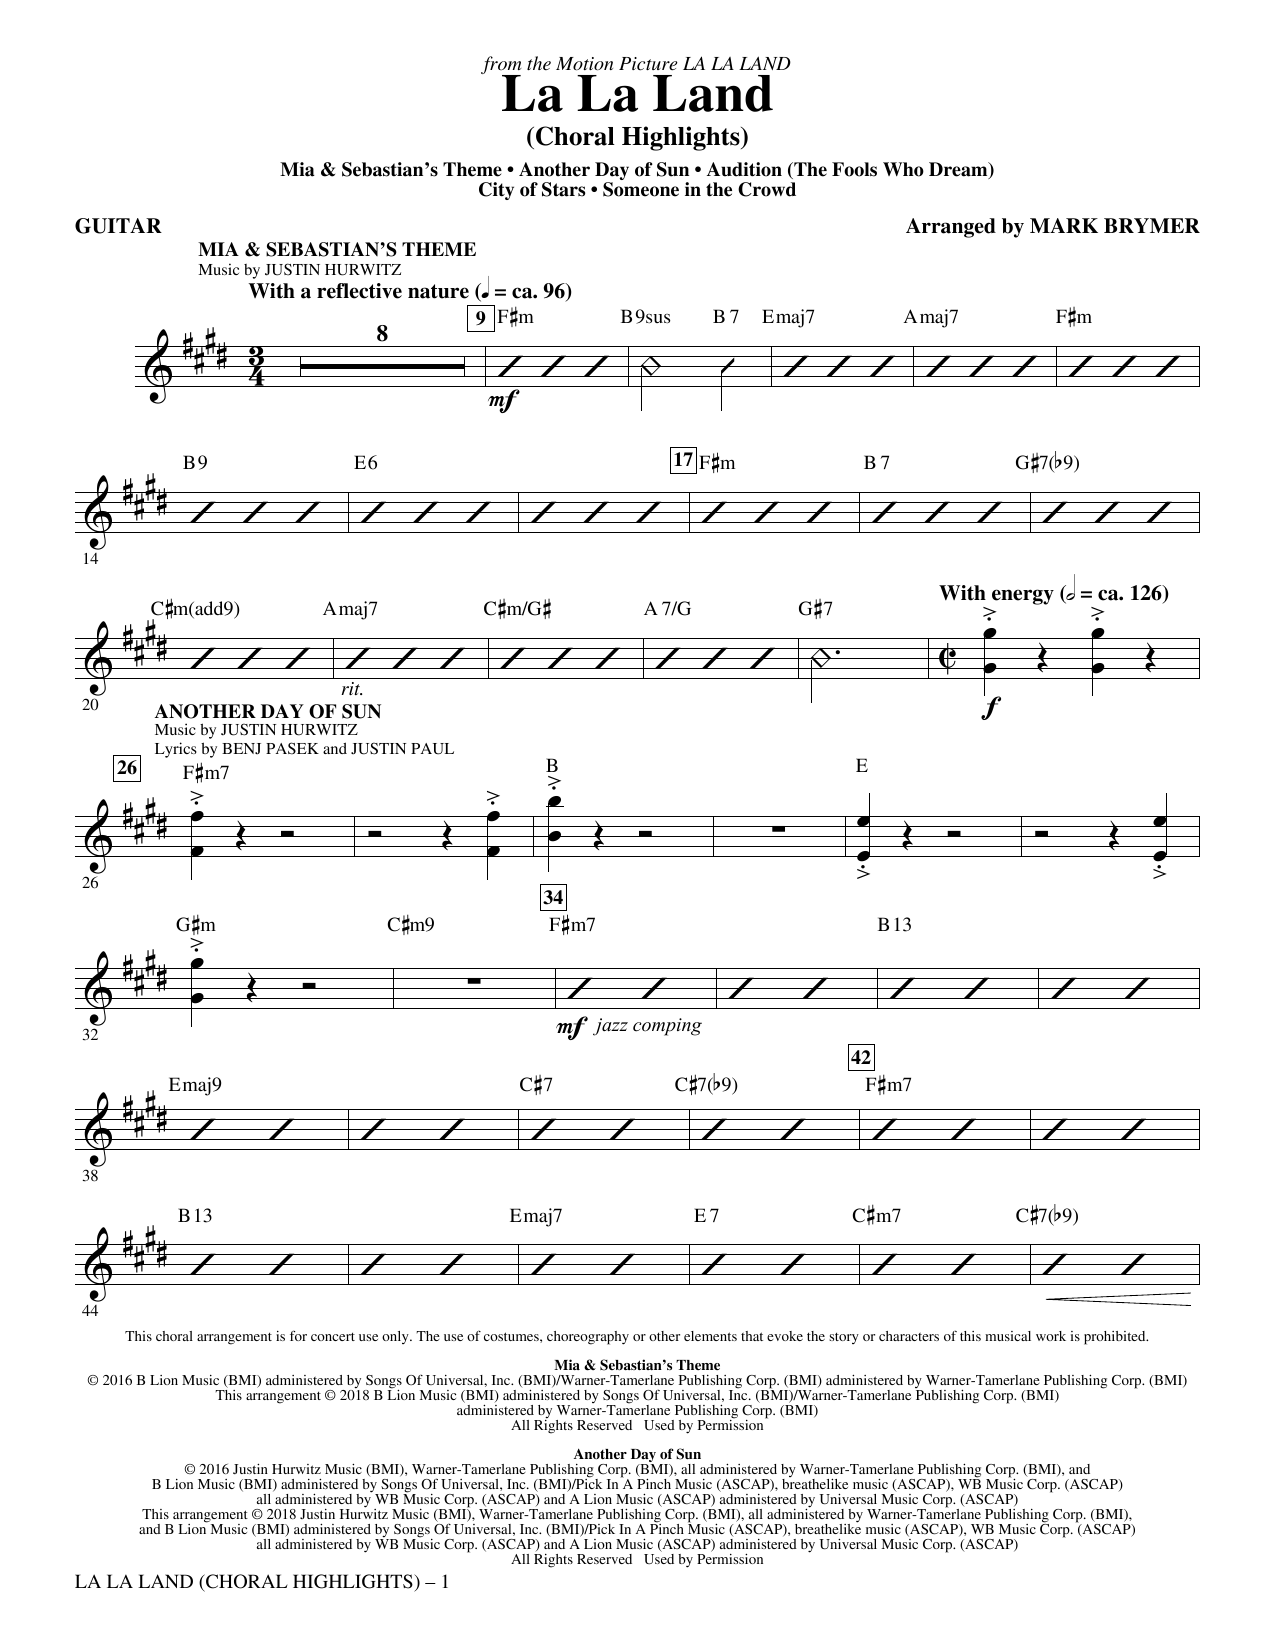 La La Land: Choral Highlights (arr. Mark Brymer) - Guitar Sheet Music